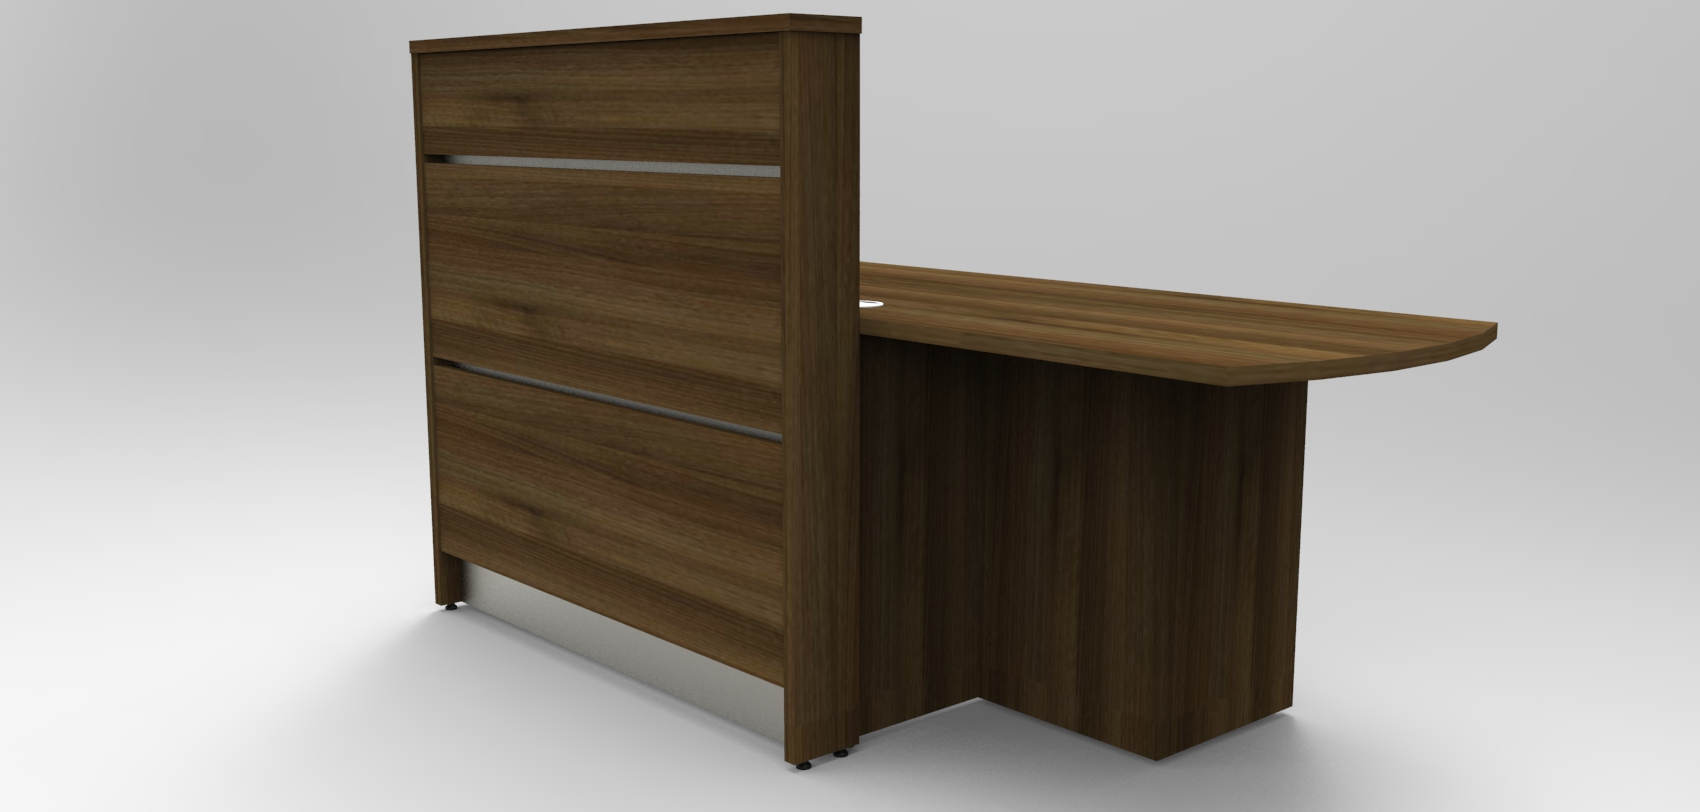 Image 3U -Tall Union compact reception desk finished in Walnut showing the low area